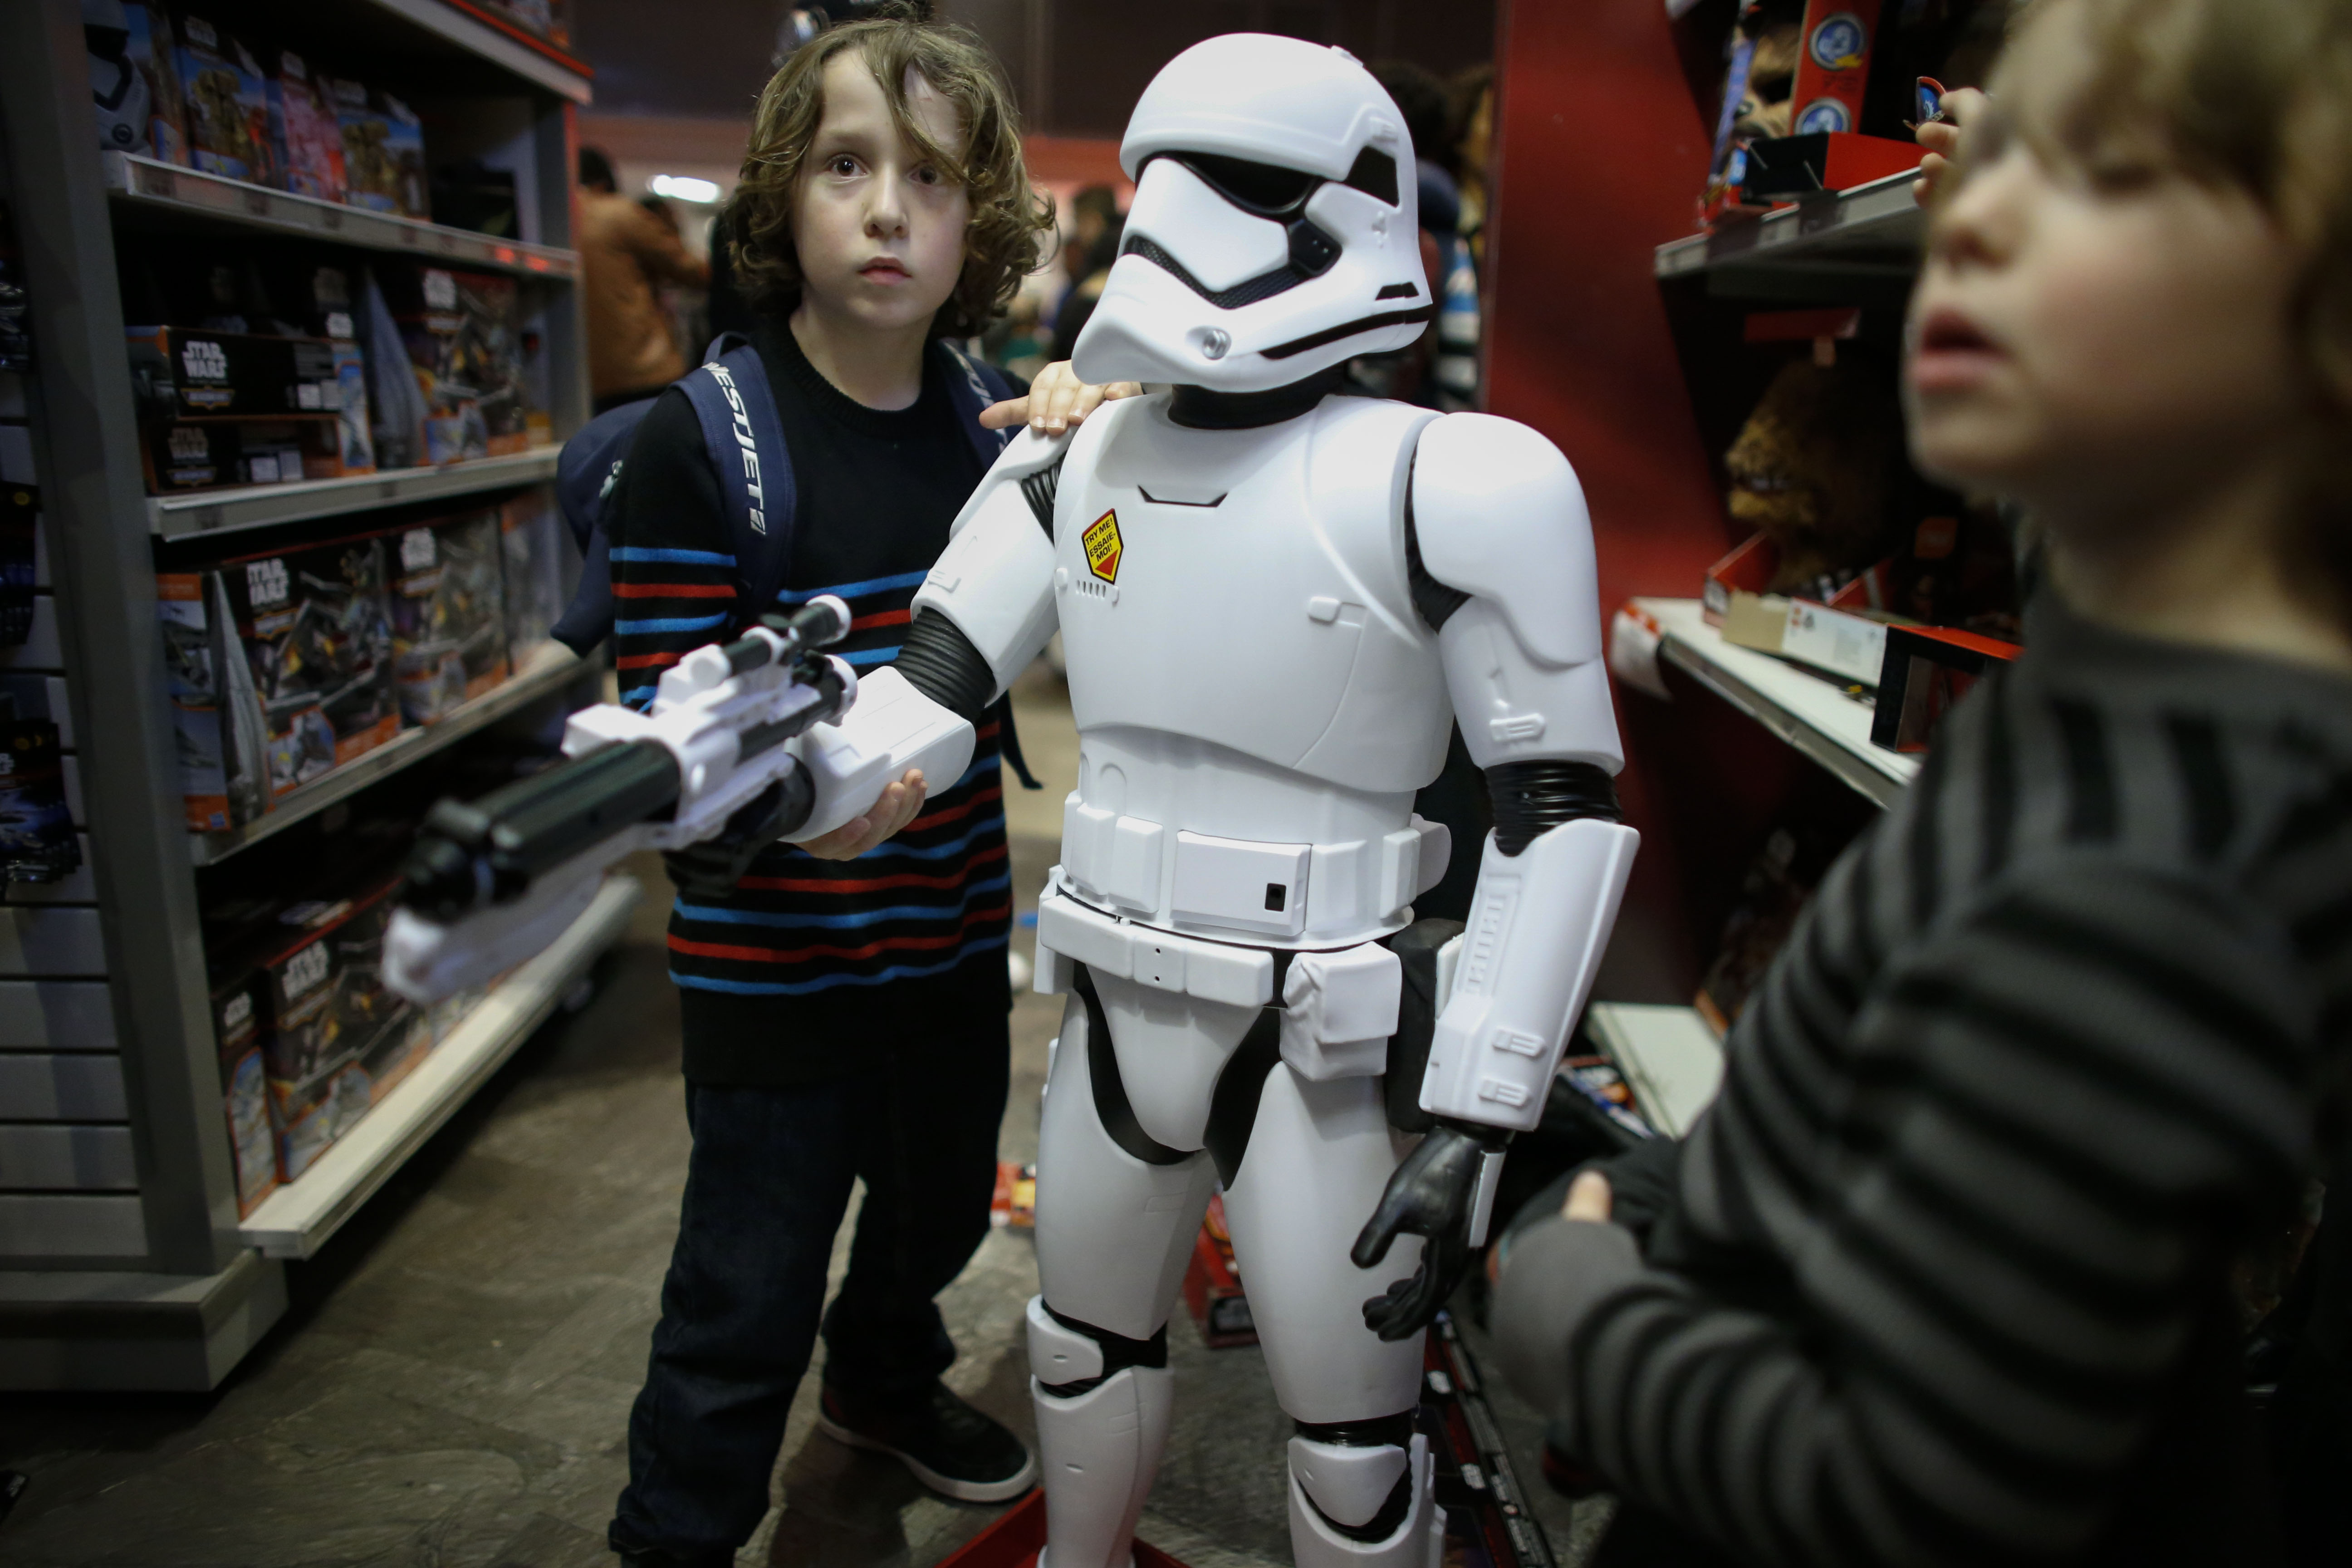 Boys play with a Stormtrooper toy from Star Wars at a Toys R Us store on December 24, 2015 in New York City.